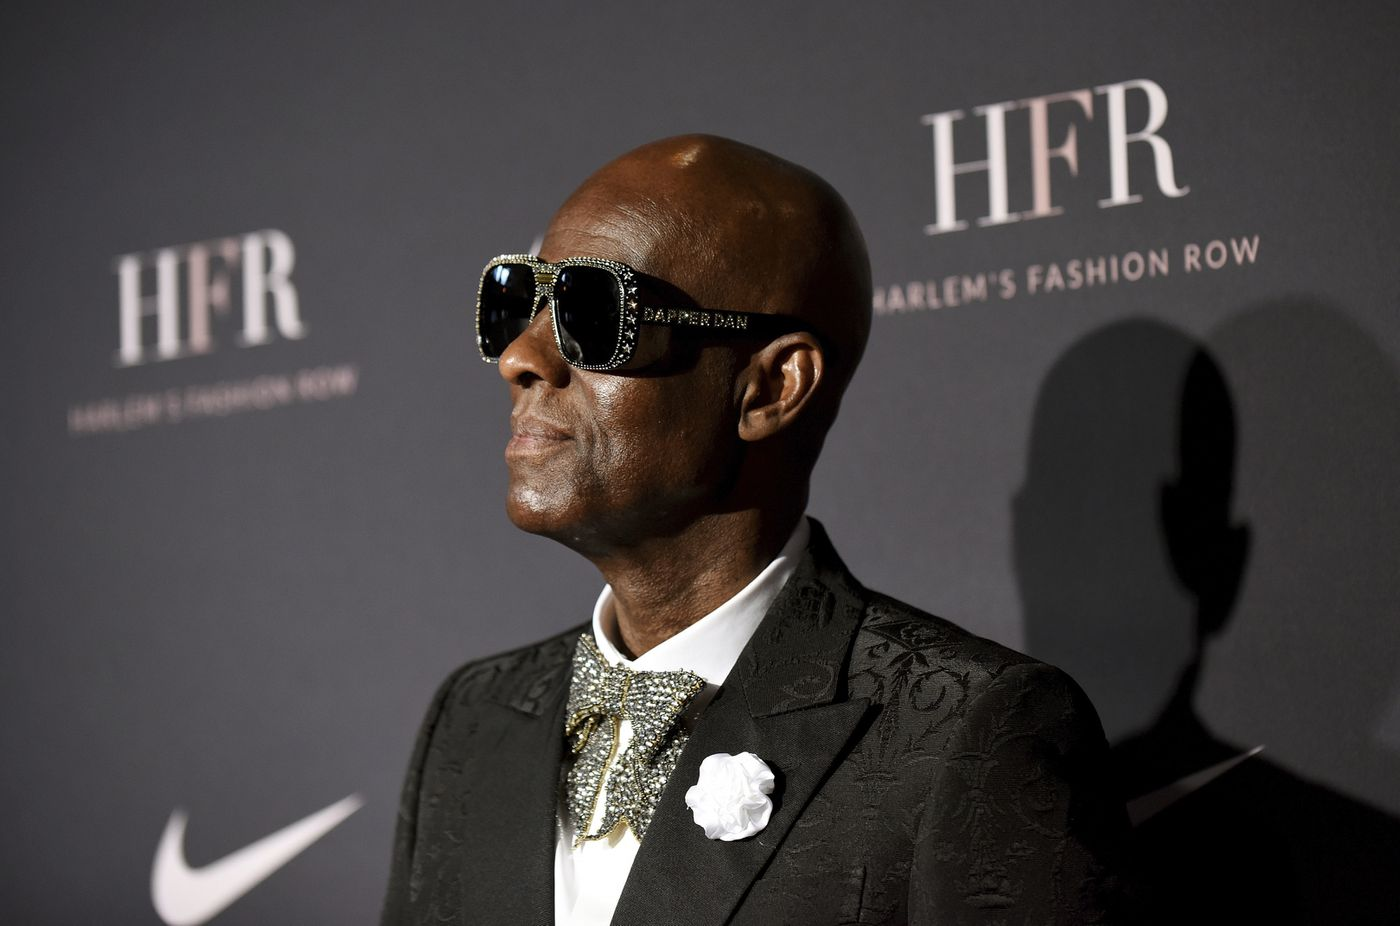 815d529abf6 Fashion icon Dapper Dan in September 2018. He and other celebrities are  calling for a